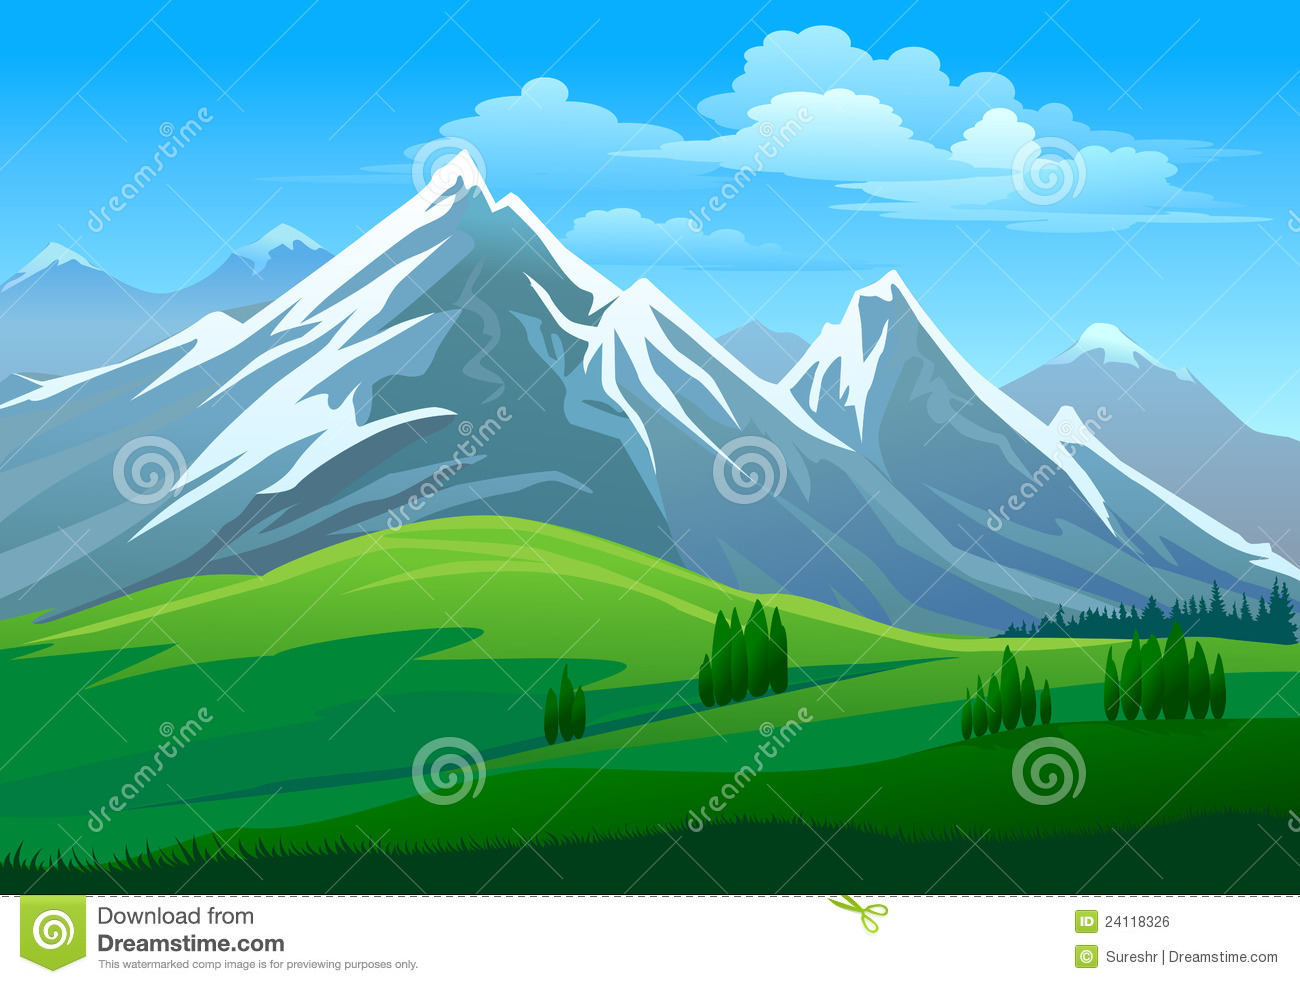 Himalaya Mountans clipart #4, Download drawings